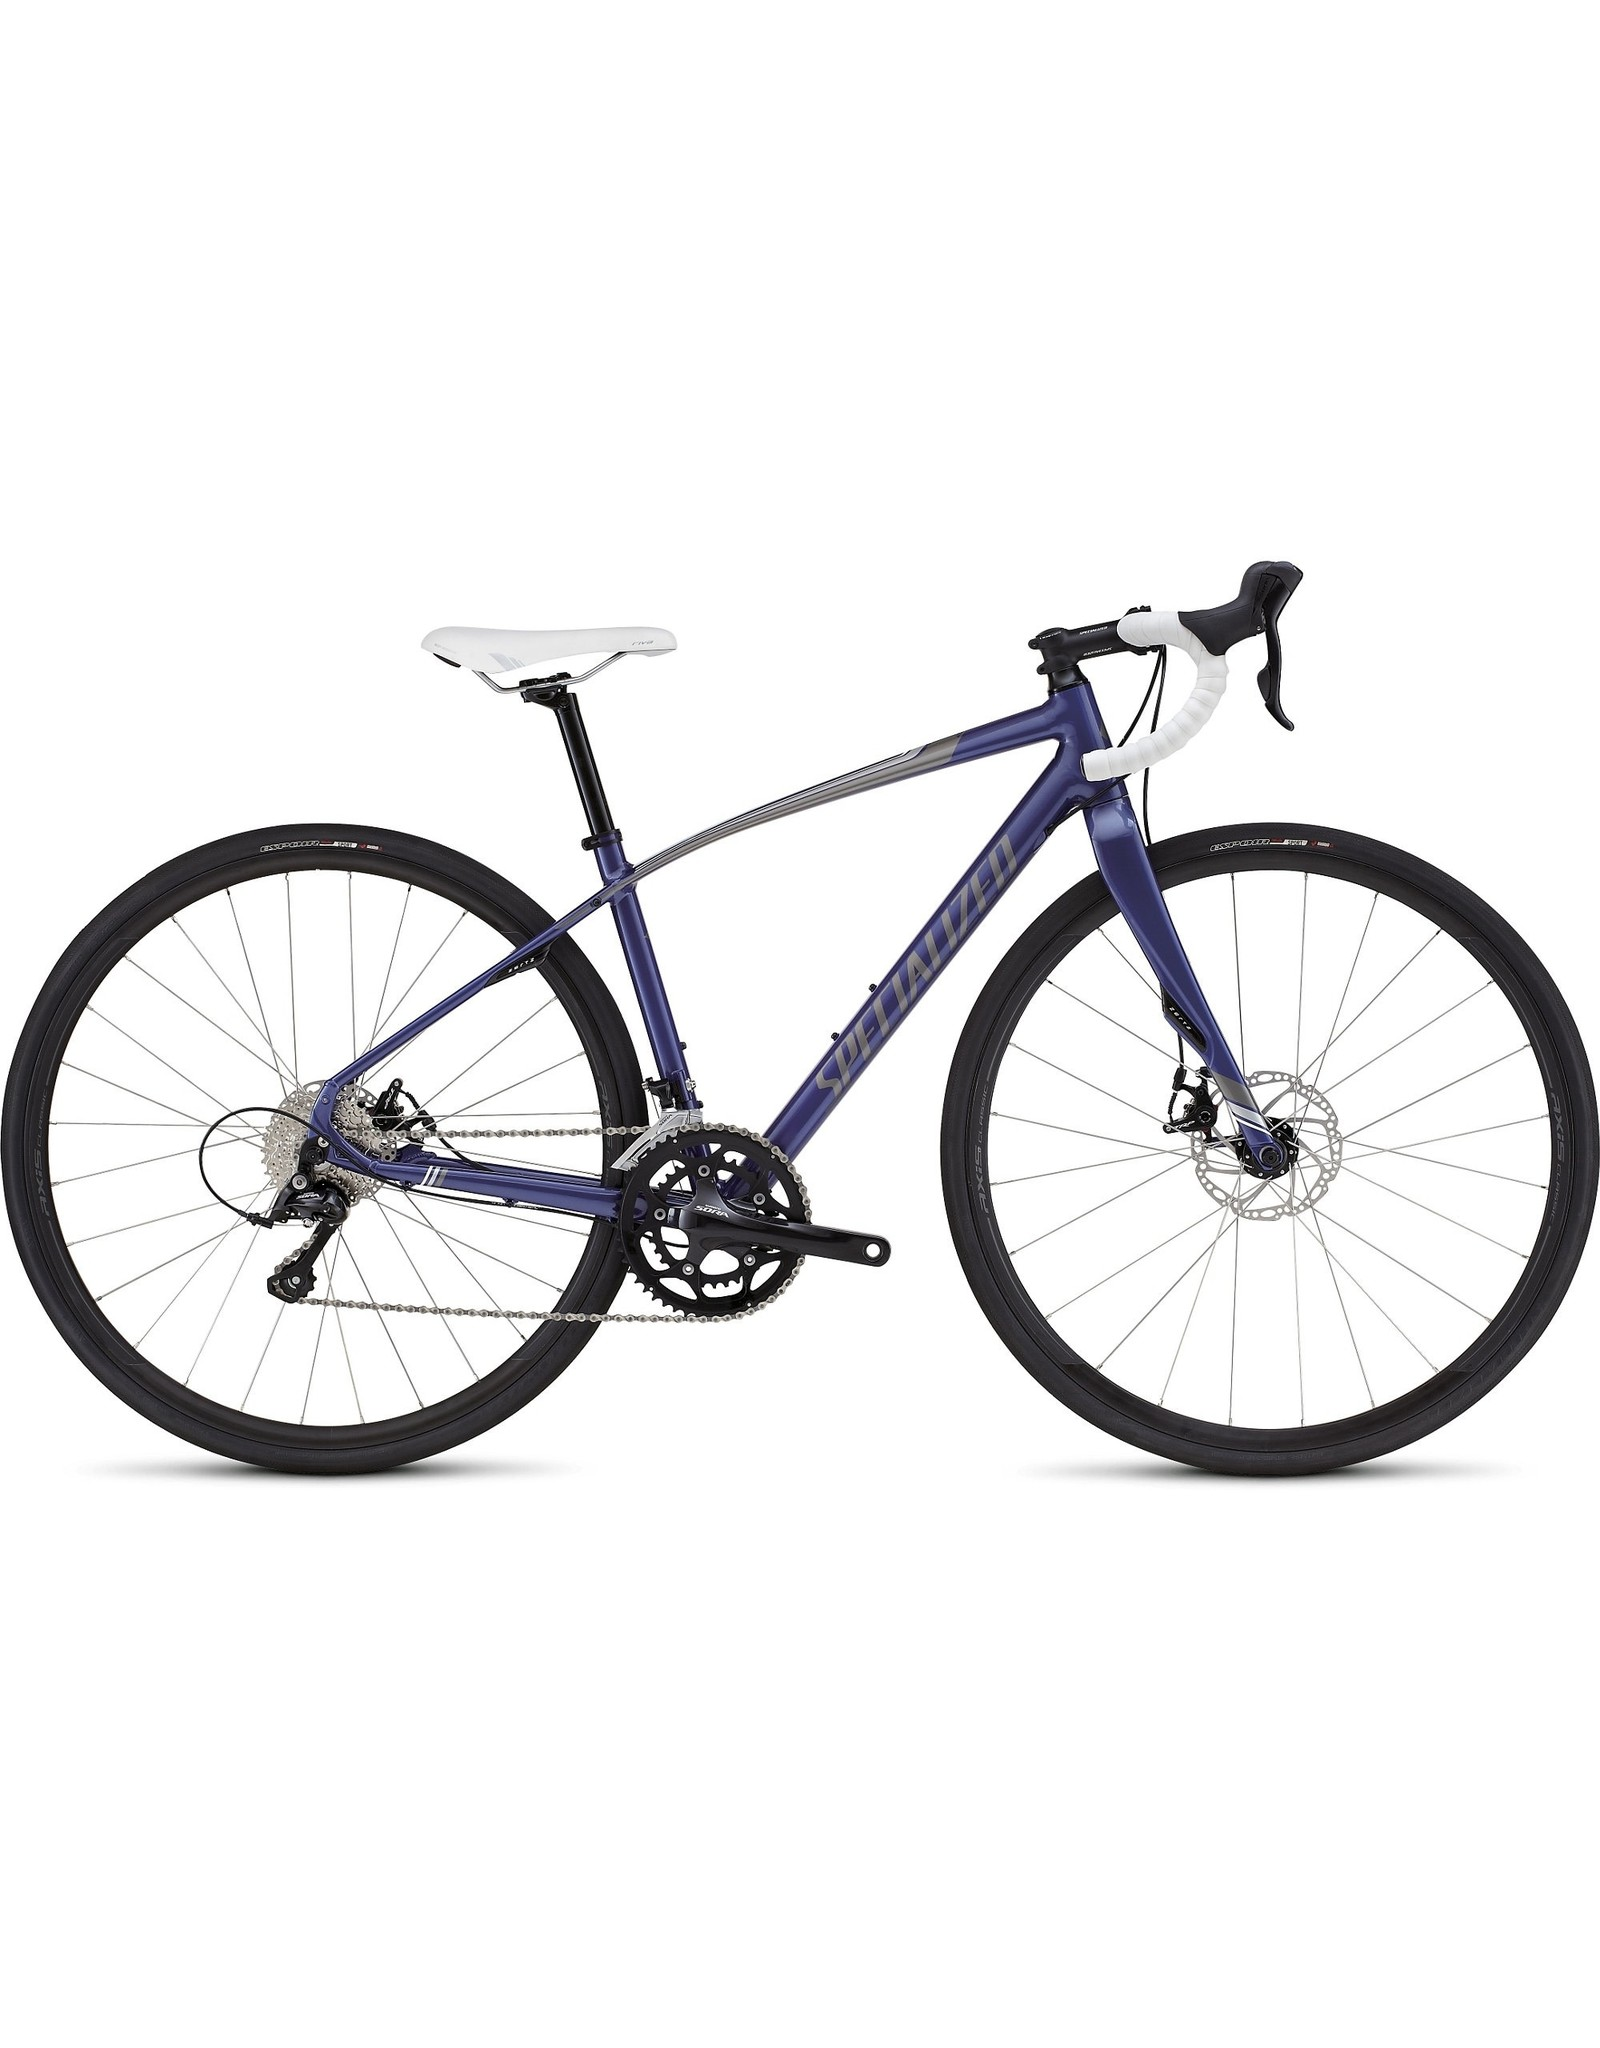 SPECIALIZED 2017 DOLCE SPORT DISC - Deep Pearl Indigo/Silver 48cm